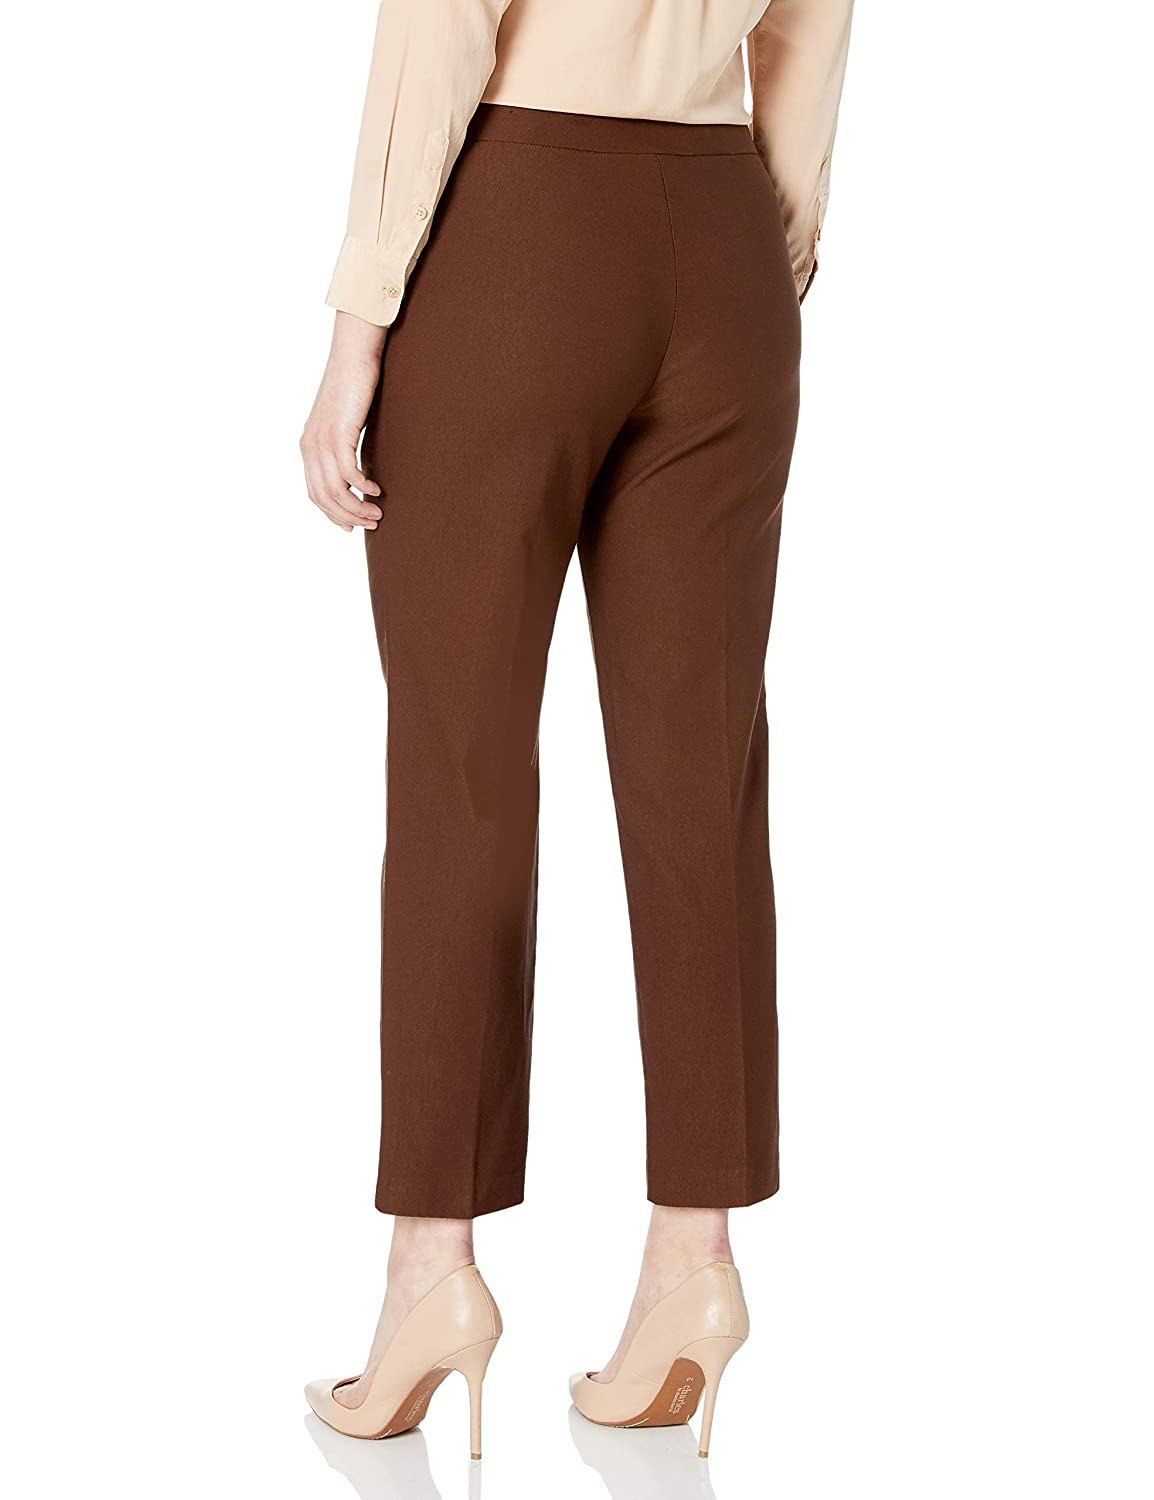 Alfred Dunner Womens Allure Slimming Plus Size Short Stretch Pants-Modern Fit